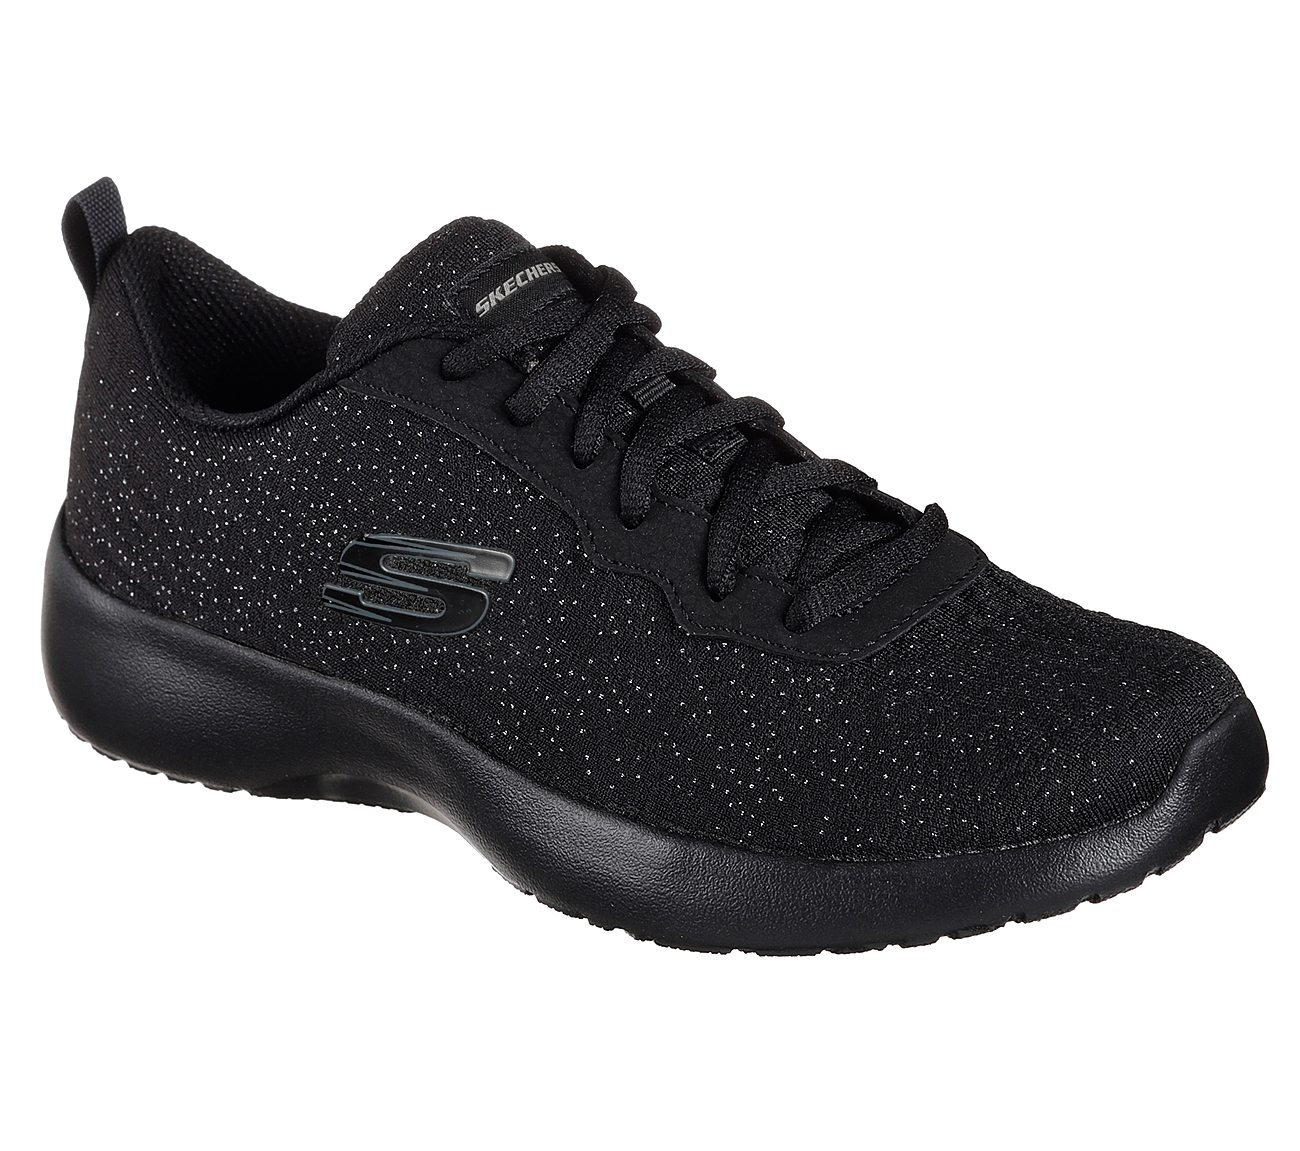 72c87e0c1ec64 Buy SKECHERS SPARLKLE KNIT MESH LACE-UP Sport Shoes only 50